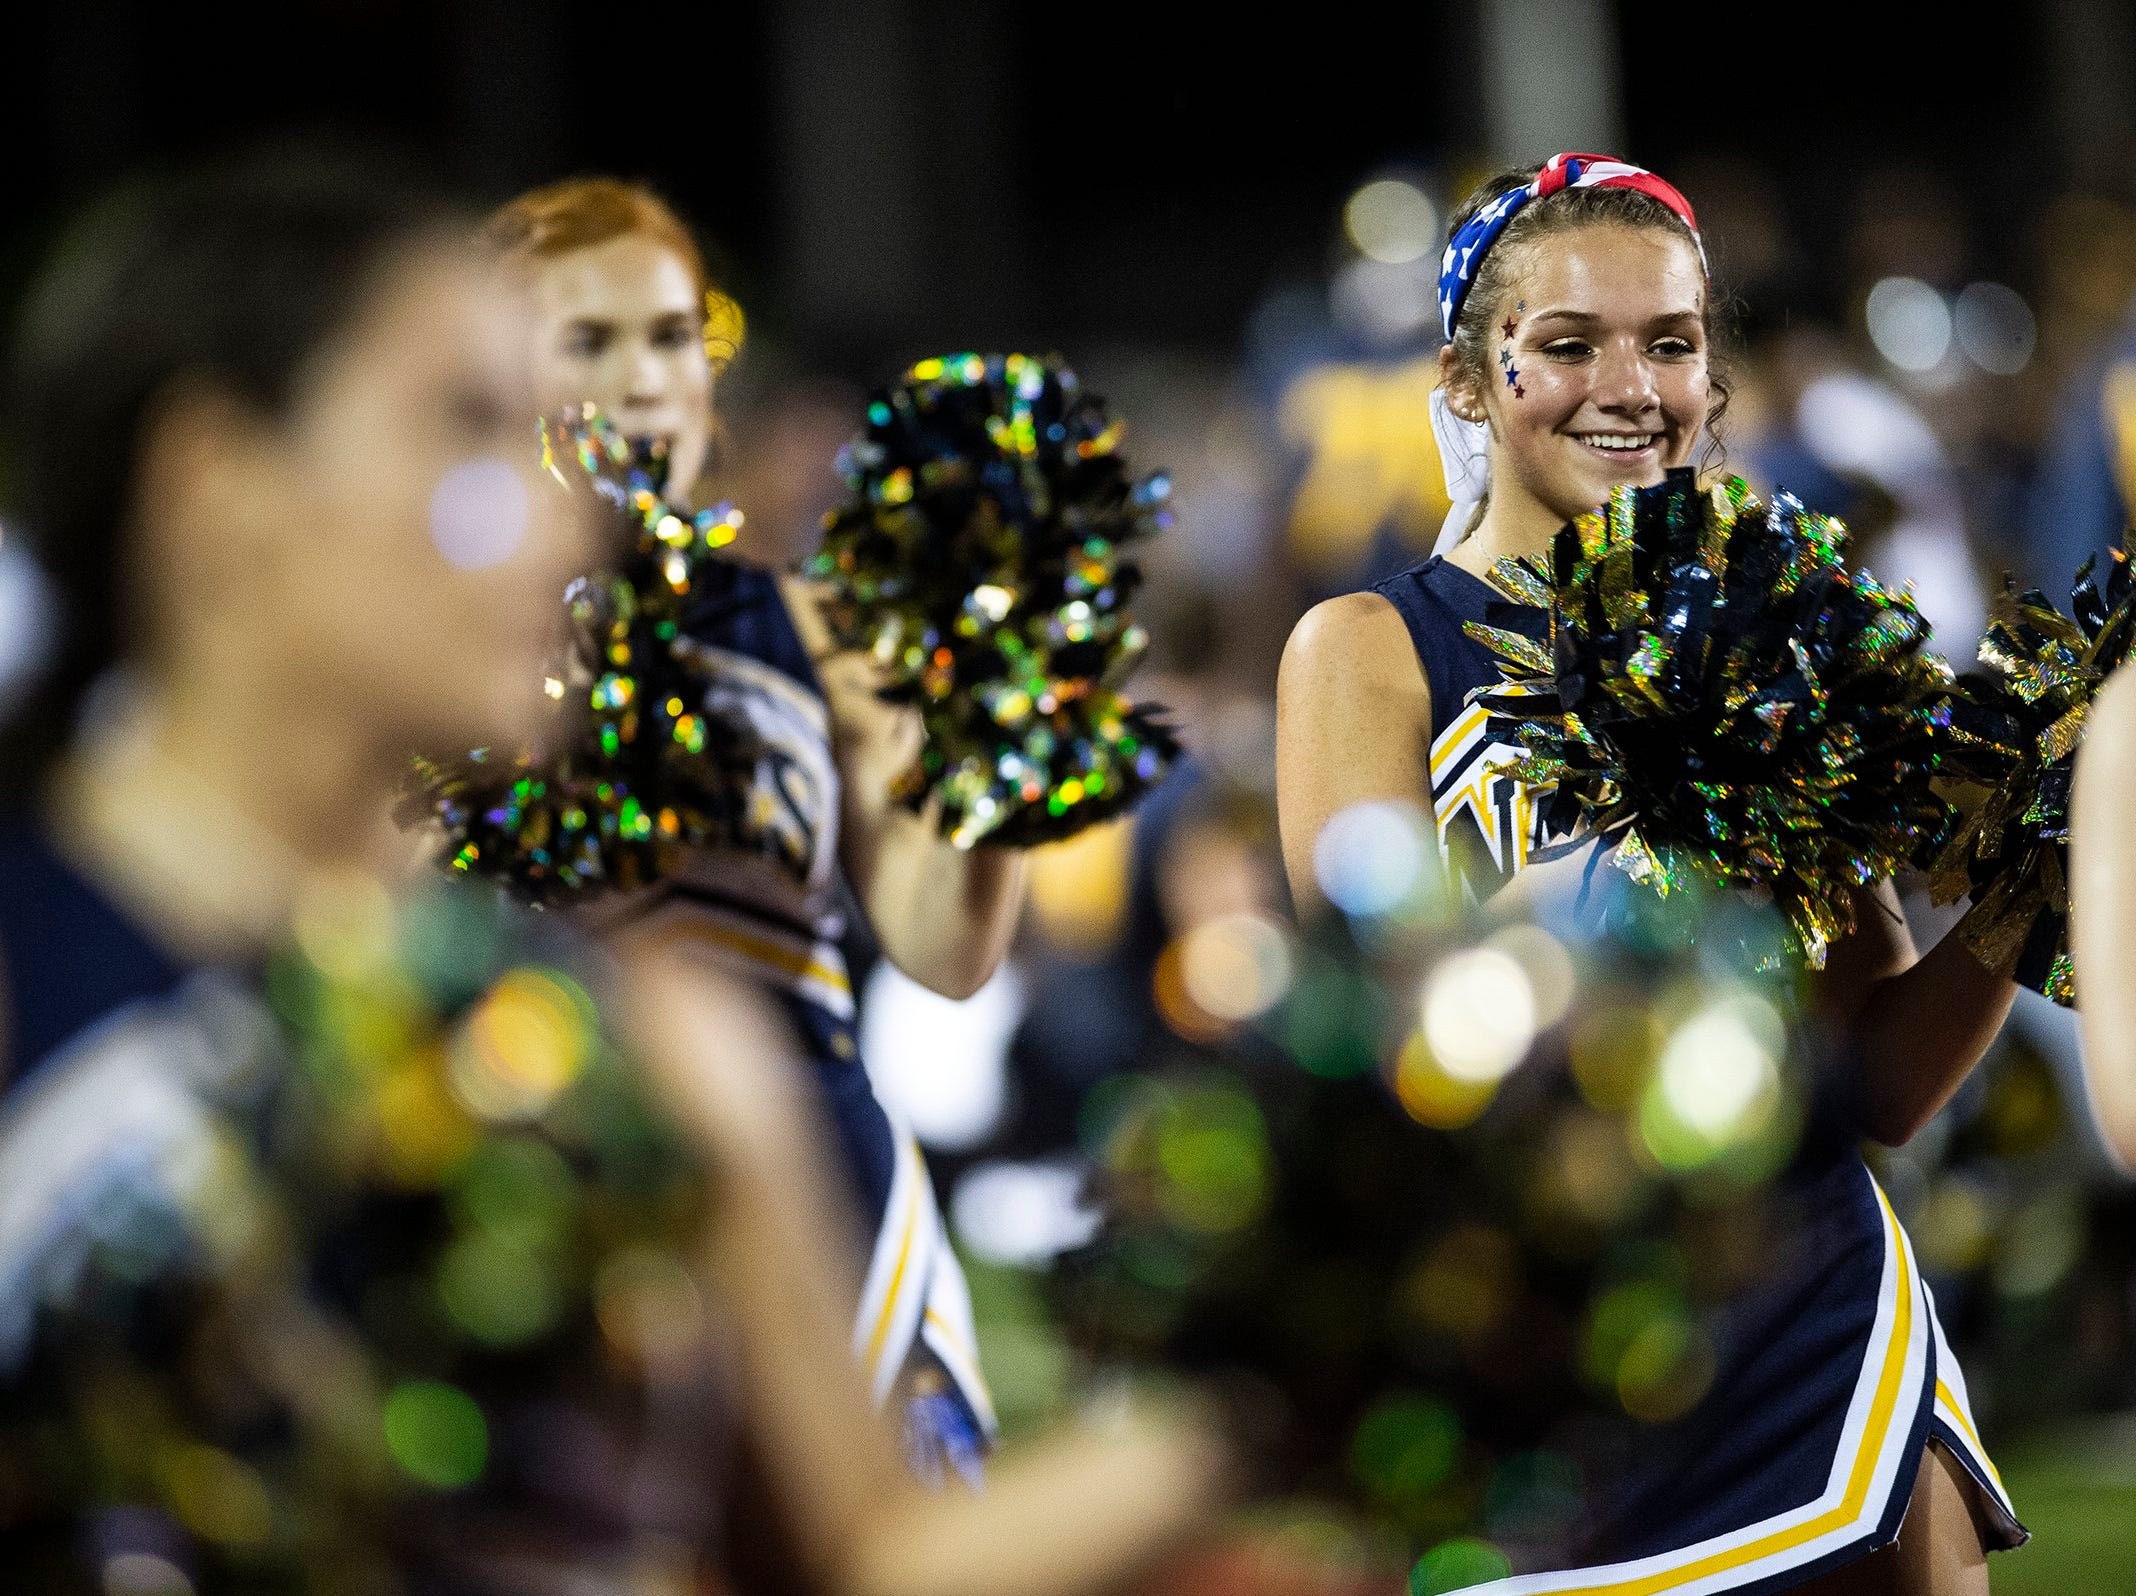 Naples High School' cheerleaders pump up the crowd during a game against Immokalee High School in Naples, Fla. on Friday, September 21, 2018.